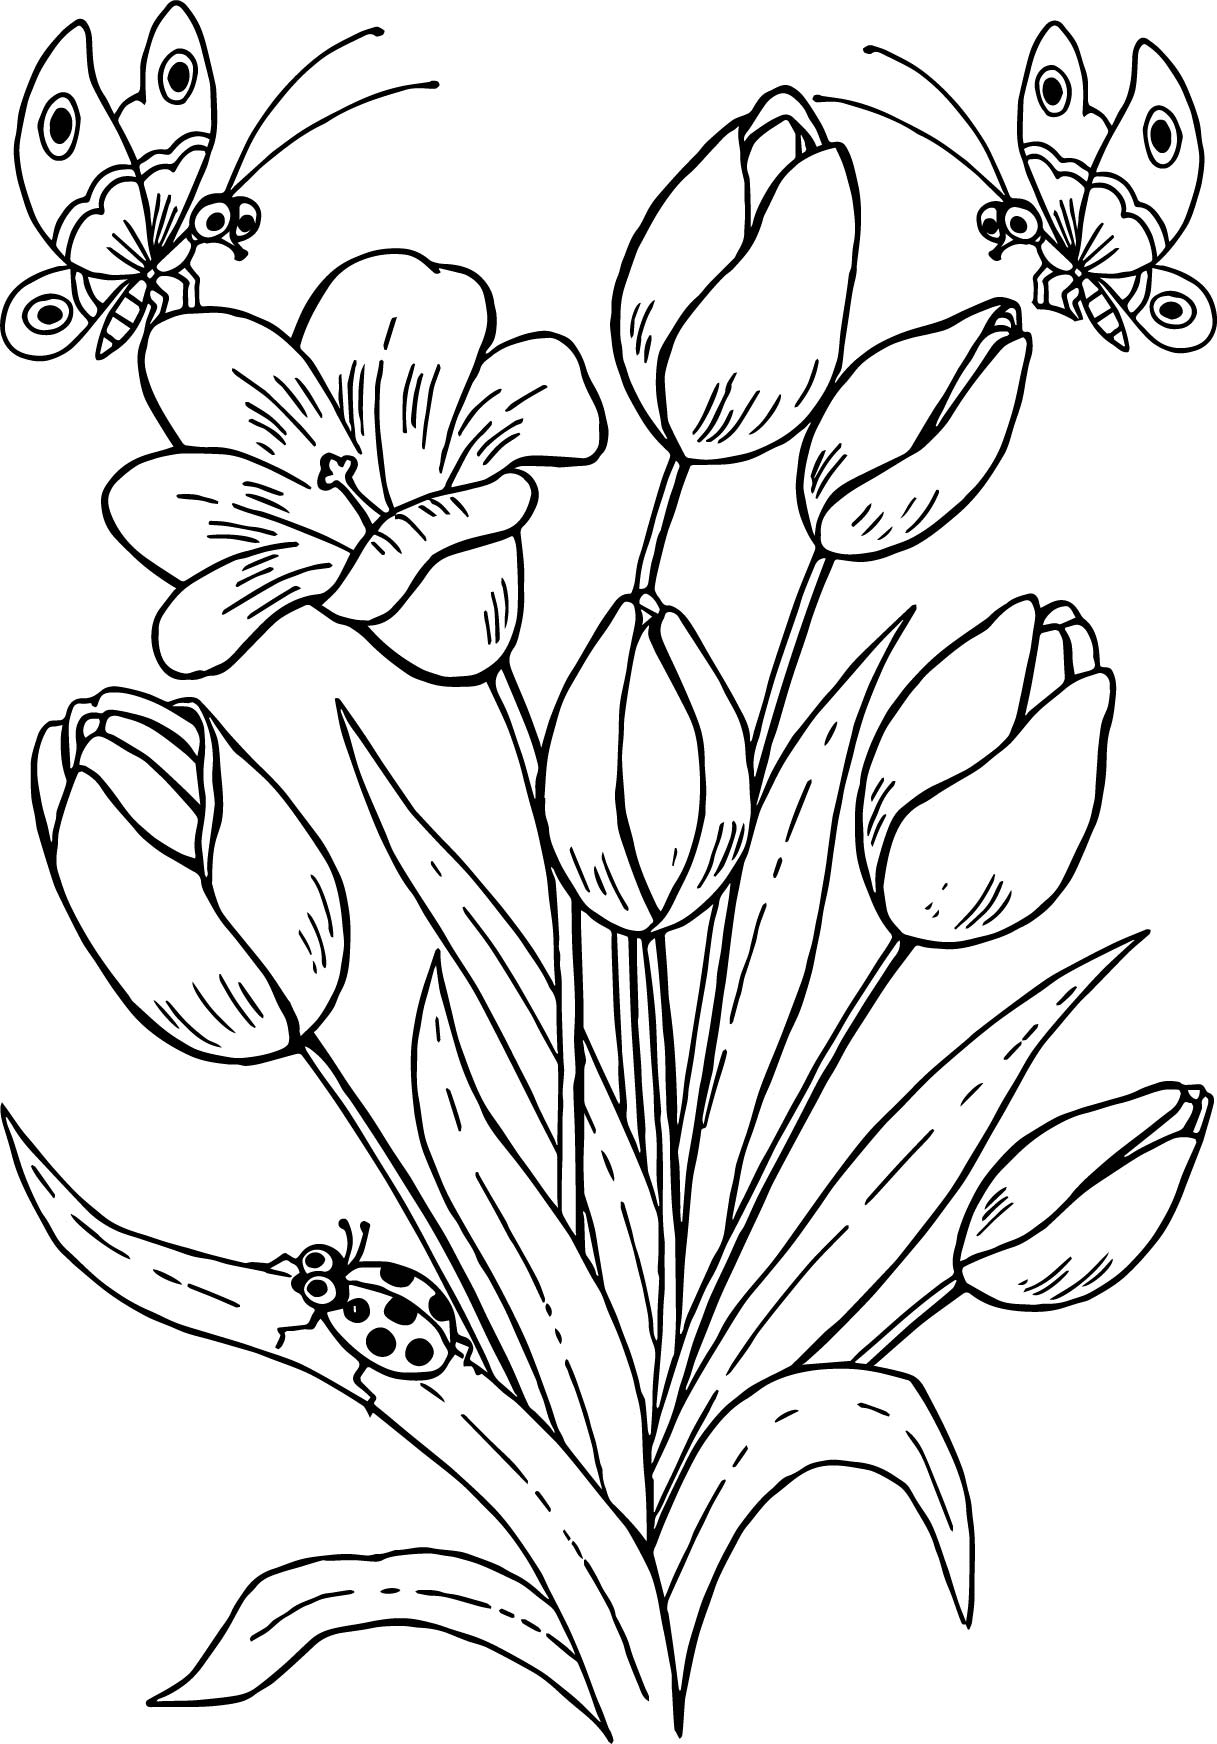 1217x1744 Butterfly Drawing With Flower Drawing Of Butterfly With Flower